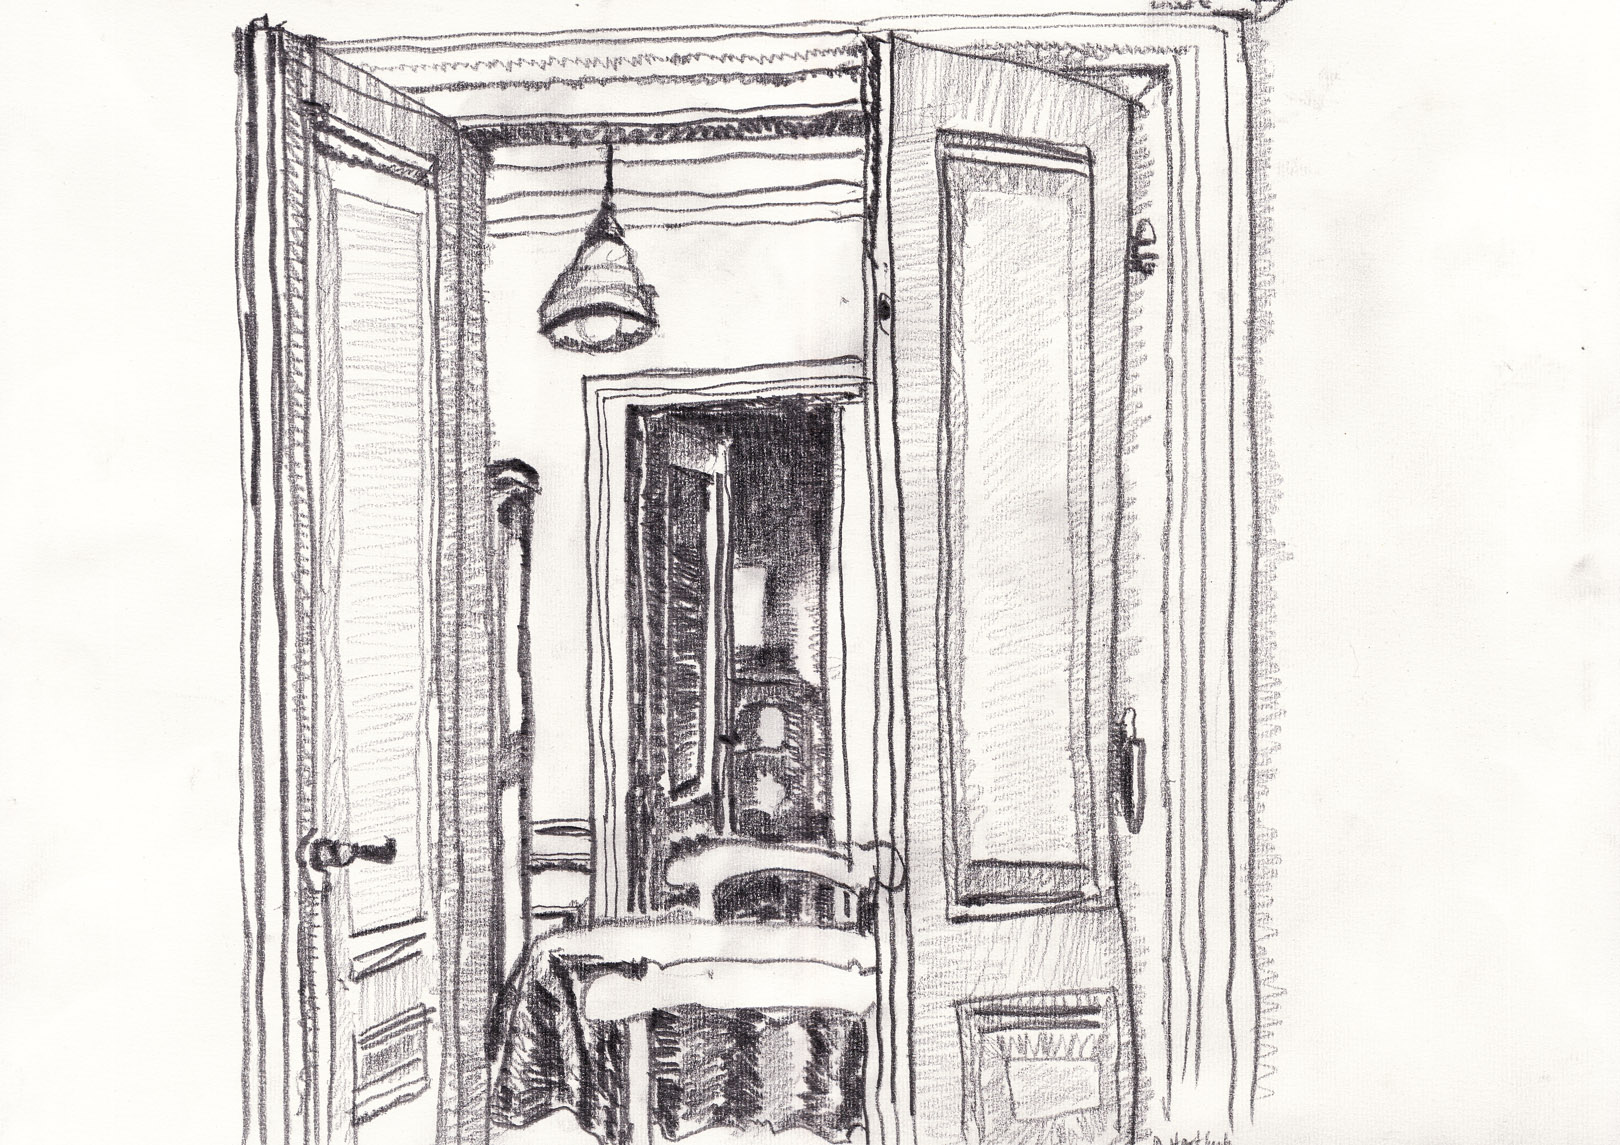 Esszimmer. Pop-Up Gallery Wiesenau. Pencil on paper. 29.7 x 42.0cm